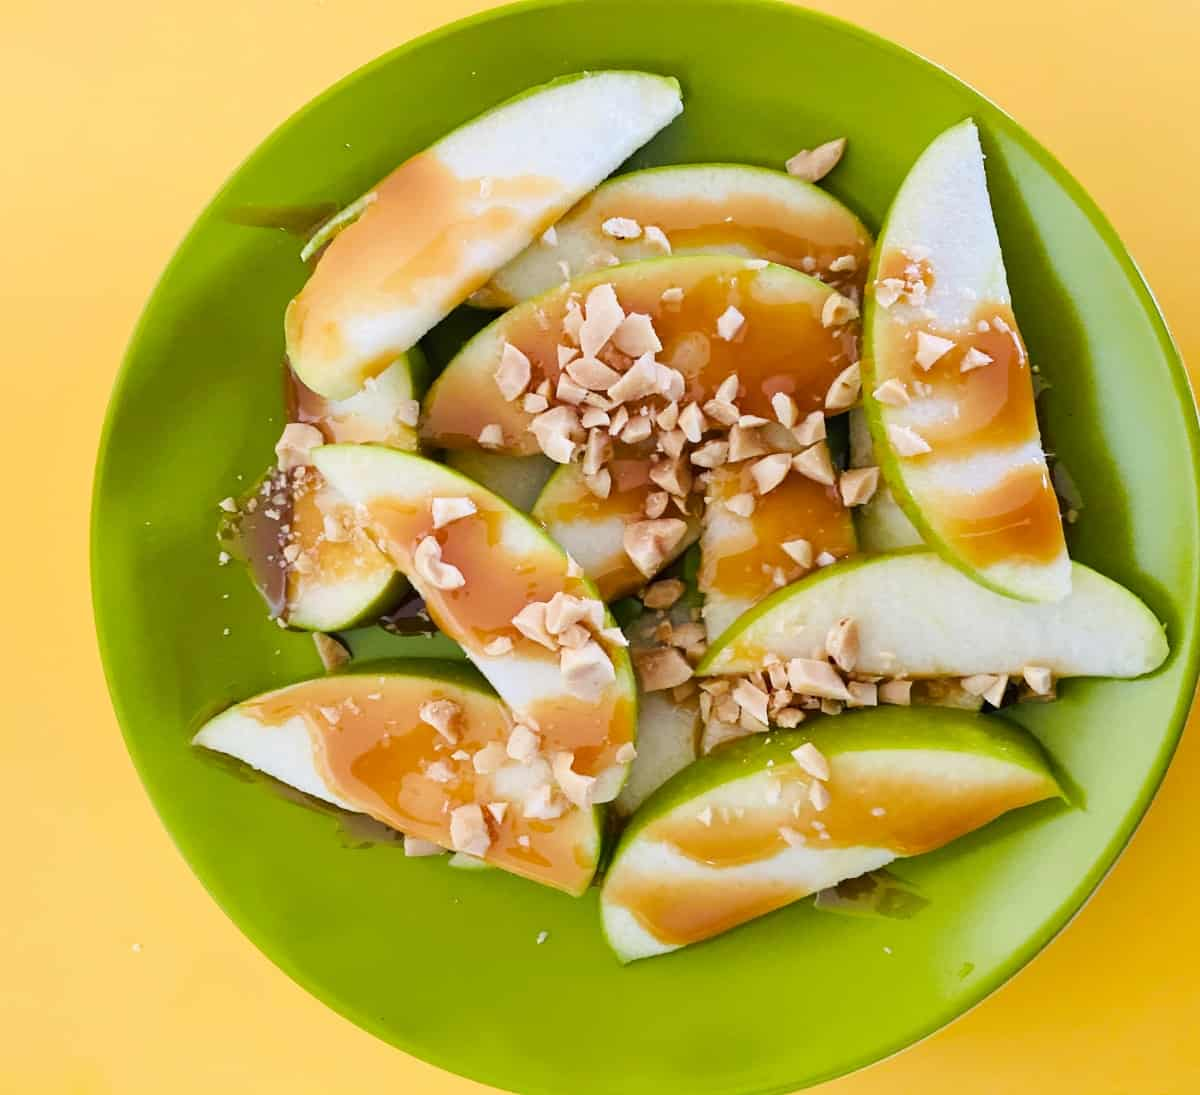 Granny Smith apple slices drizzled with caramel and topped with chopped peanuts on green plate.